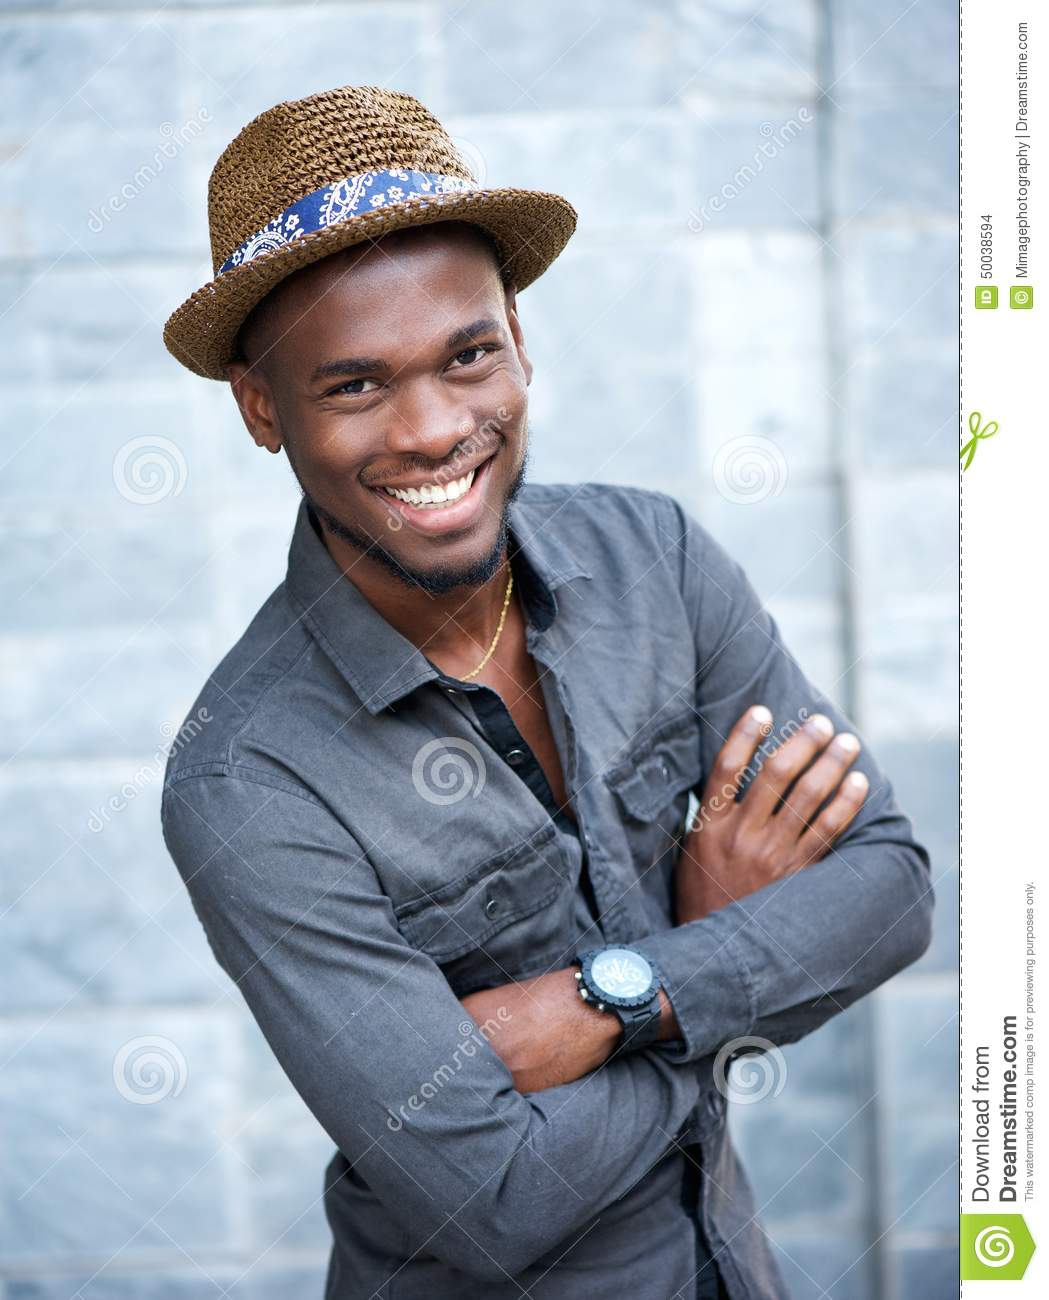 African American: Handsome African American Man Smiling With Arms Crossed